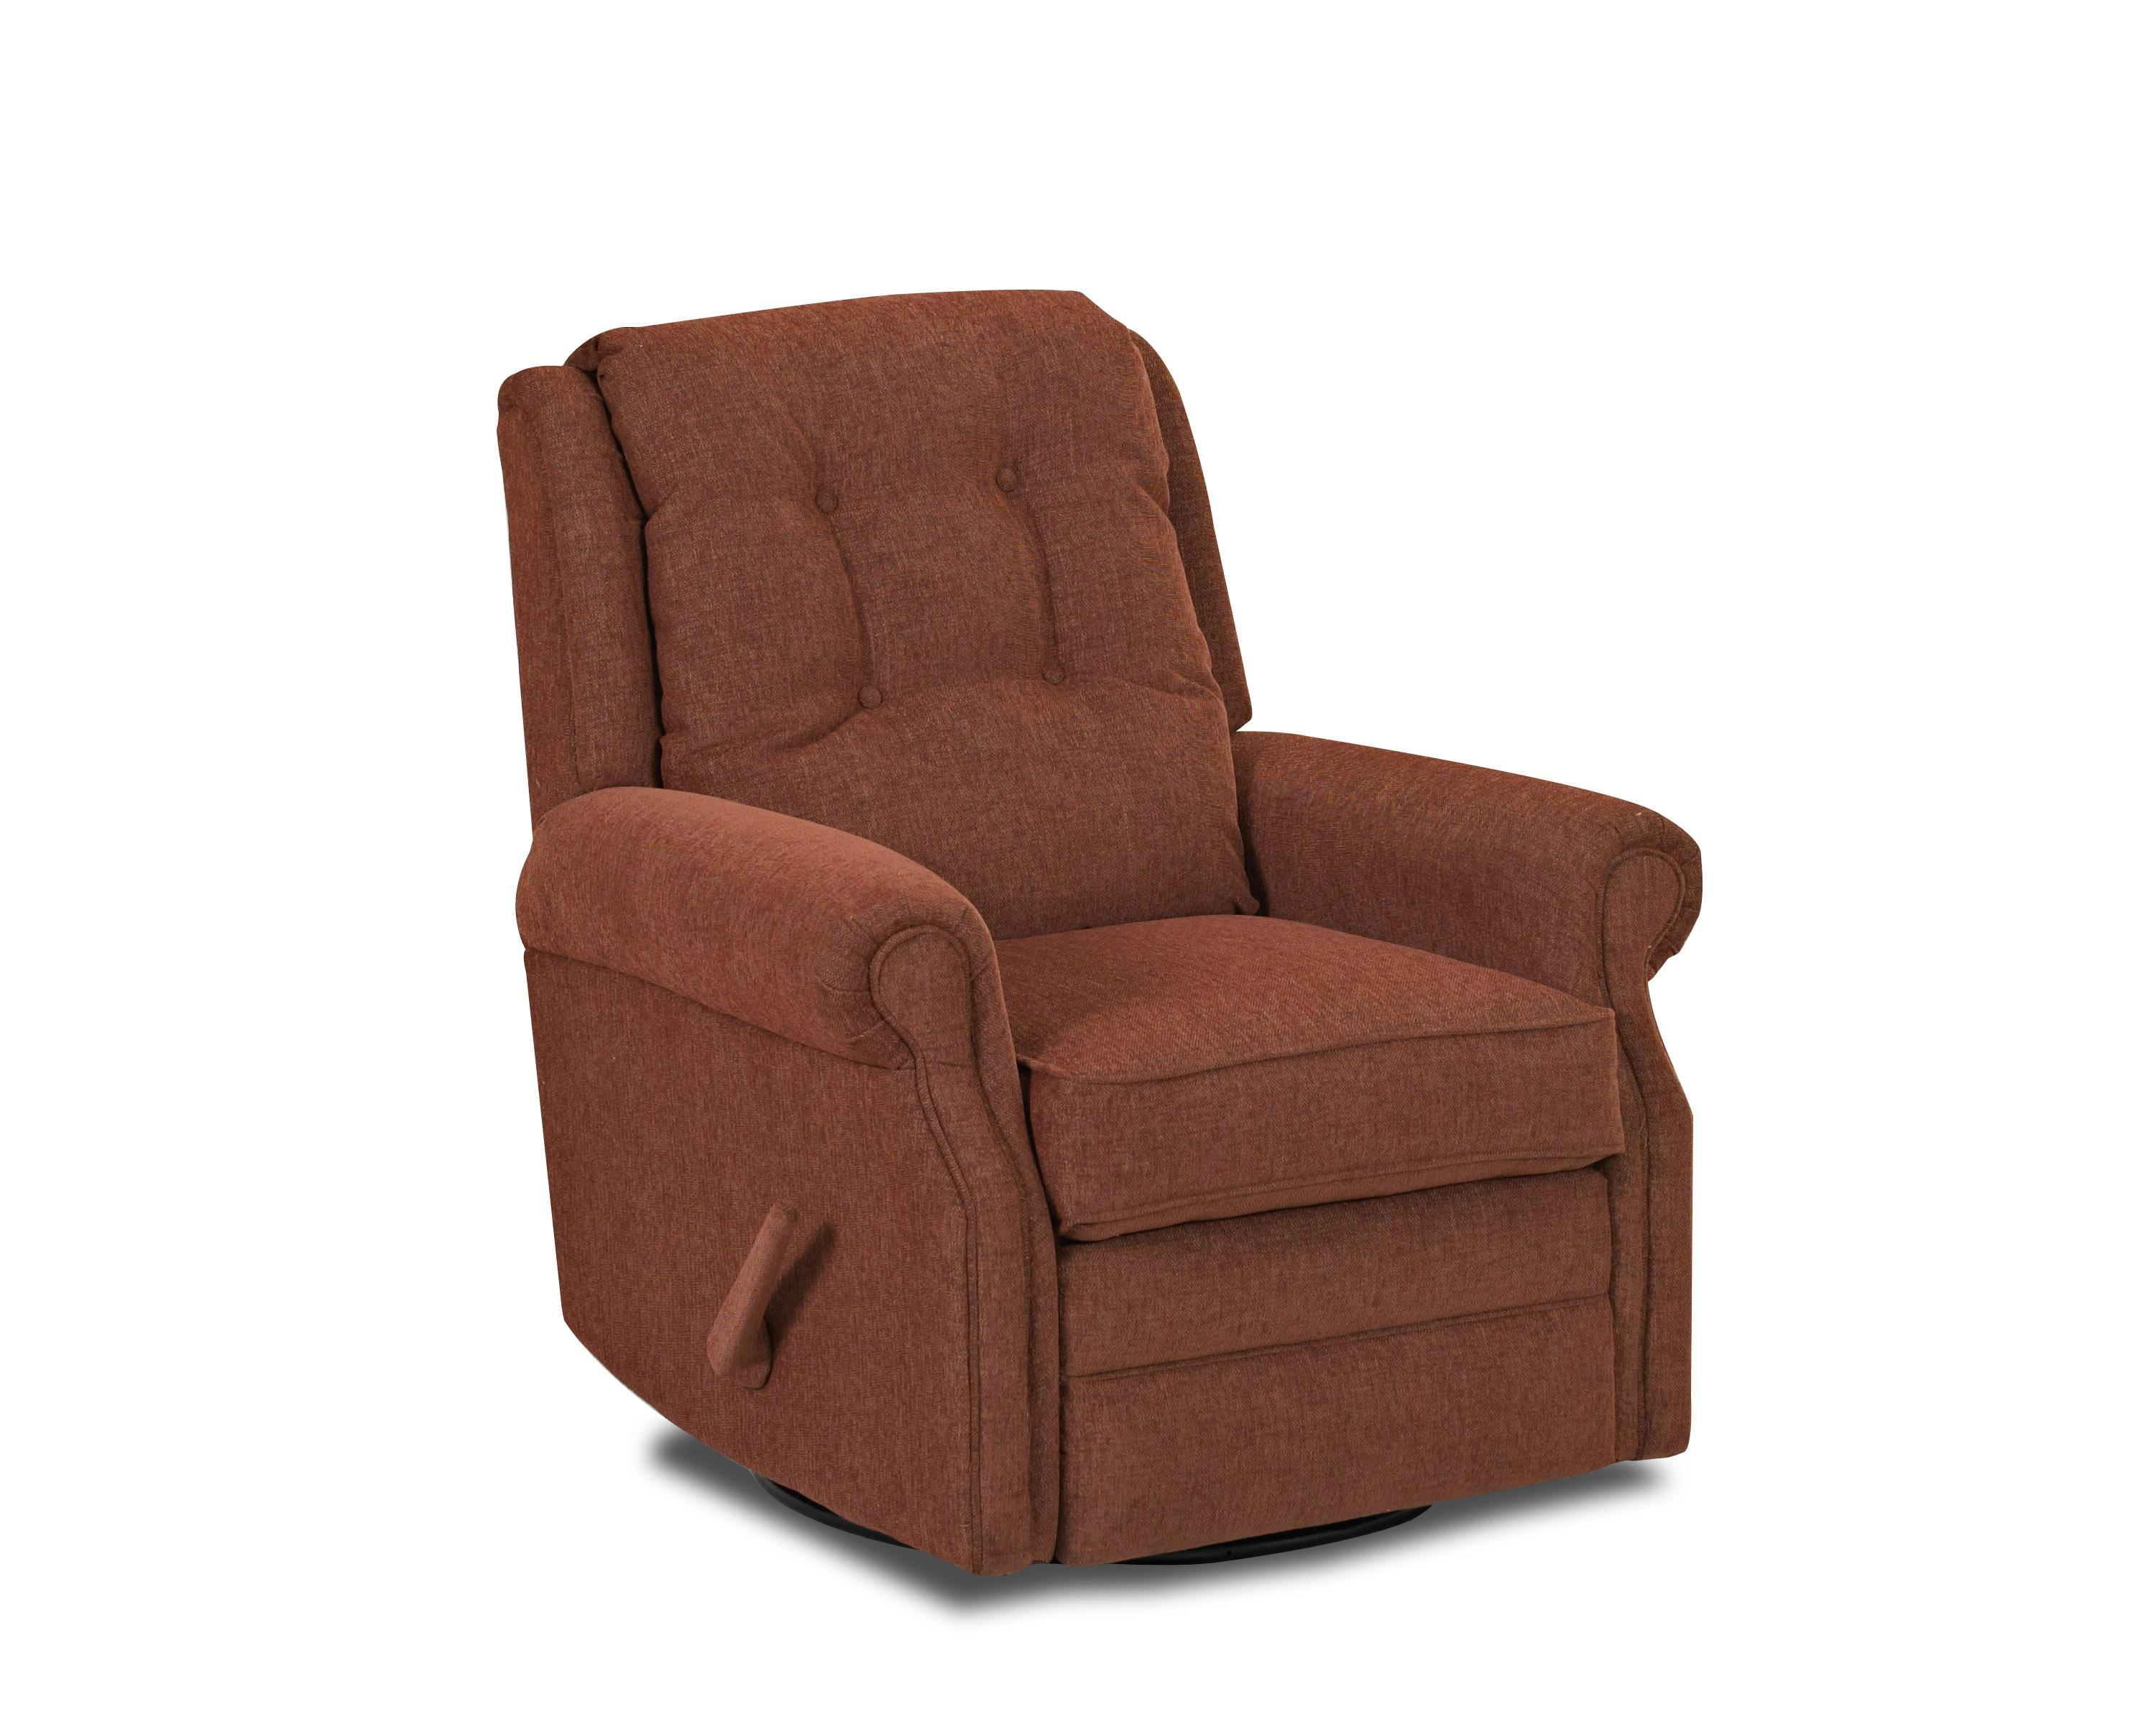 Reclining Rocking Chair Transitional Manual Swivel Rocking Reclining Chair With